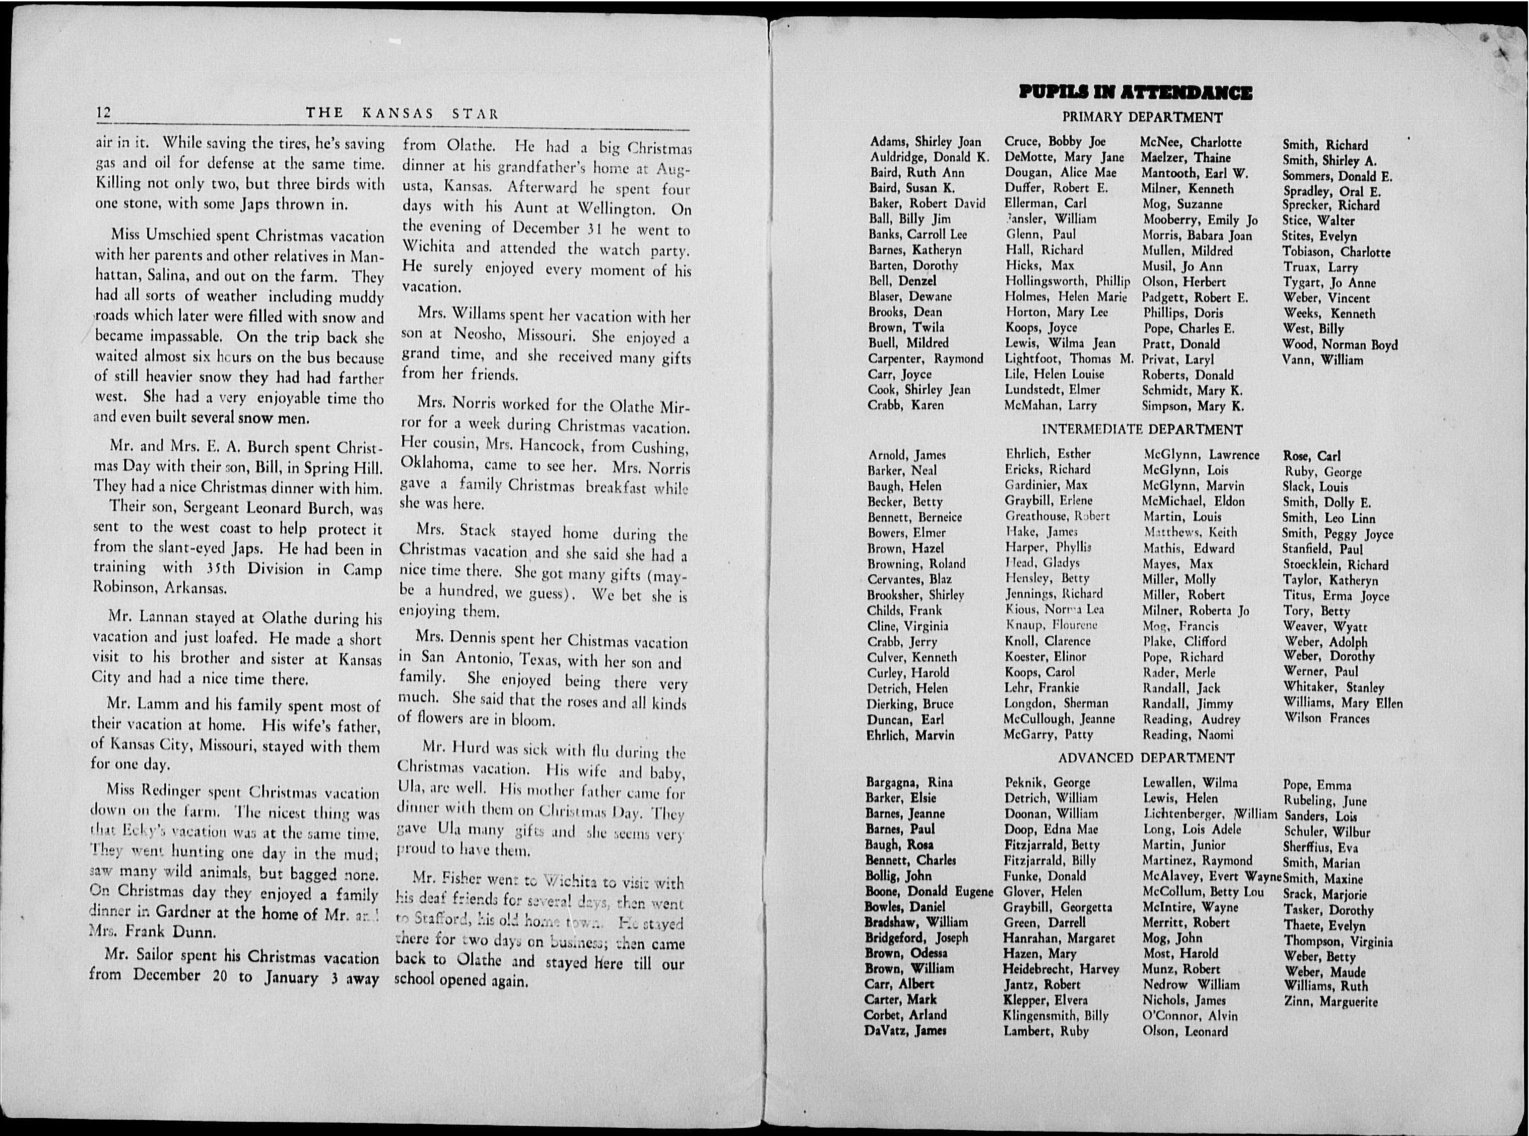 The Kansas Star, volume 56, number 5 - 12-Inside back